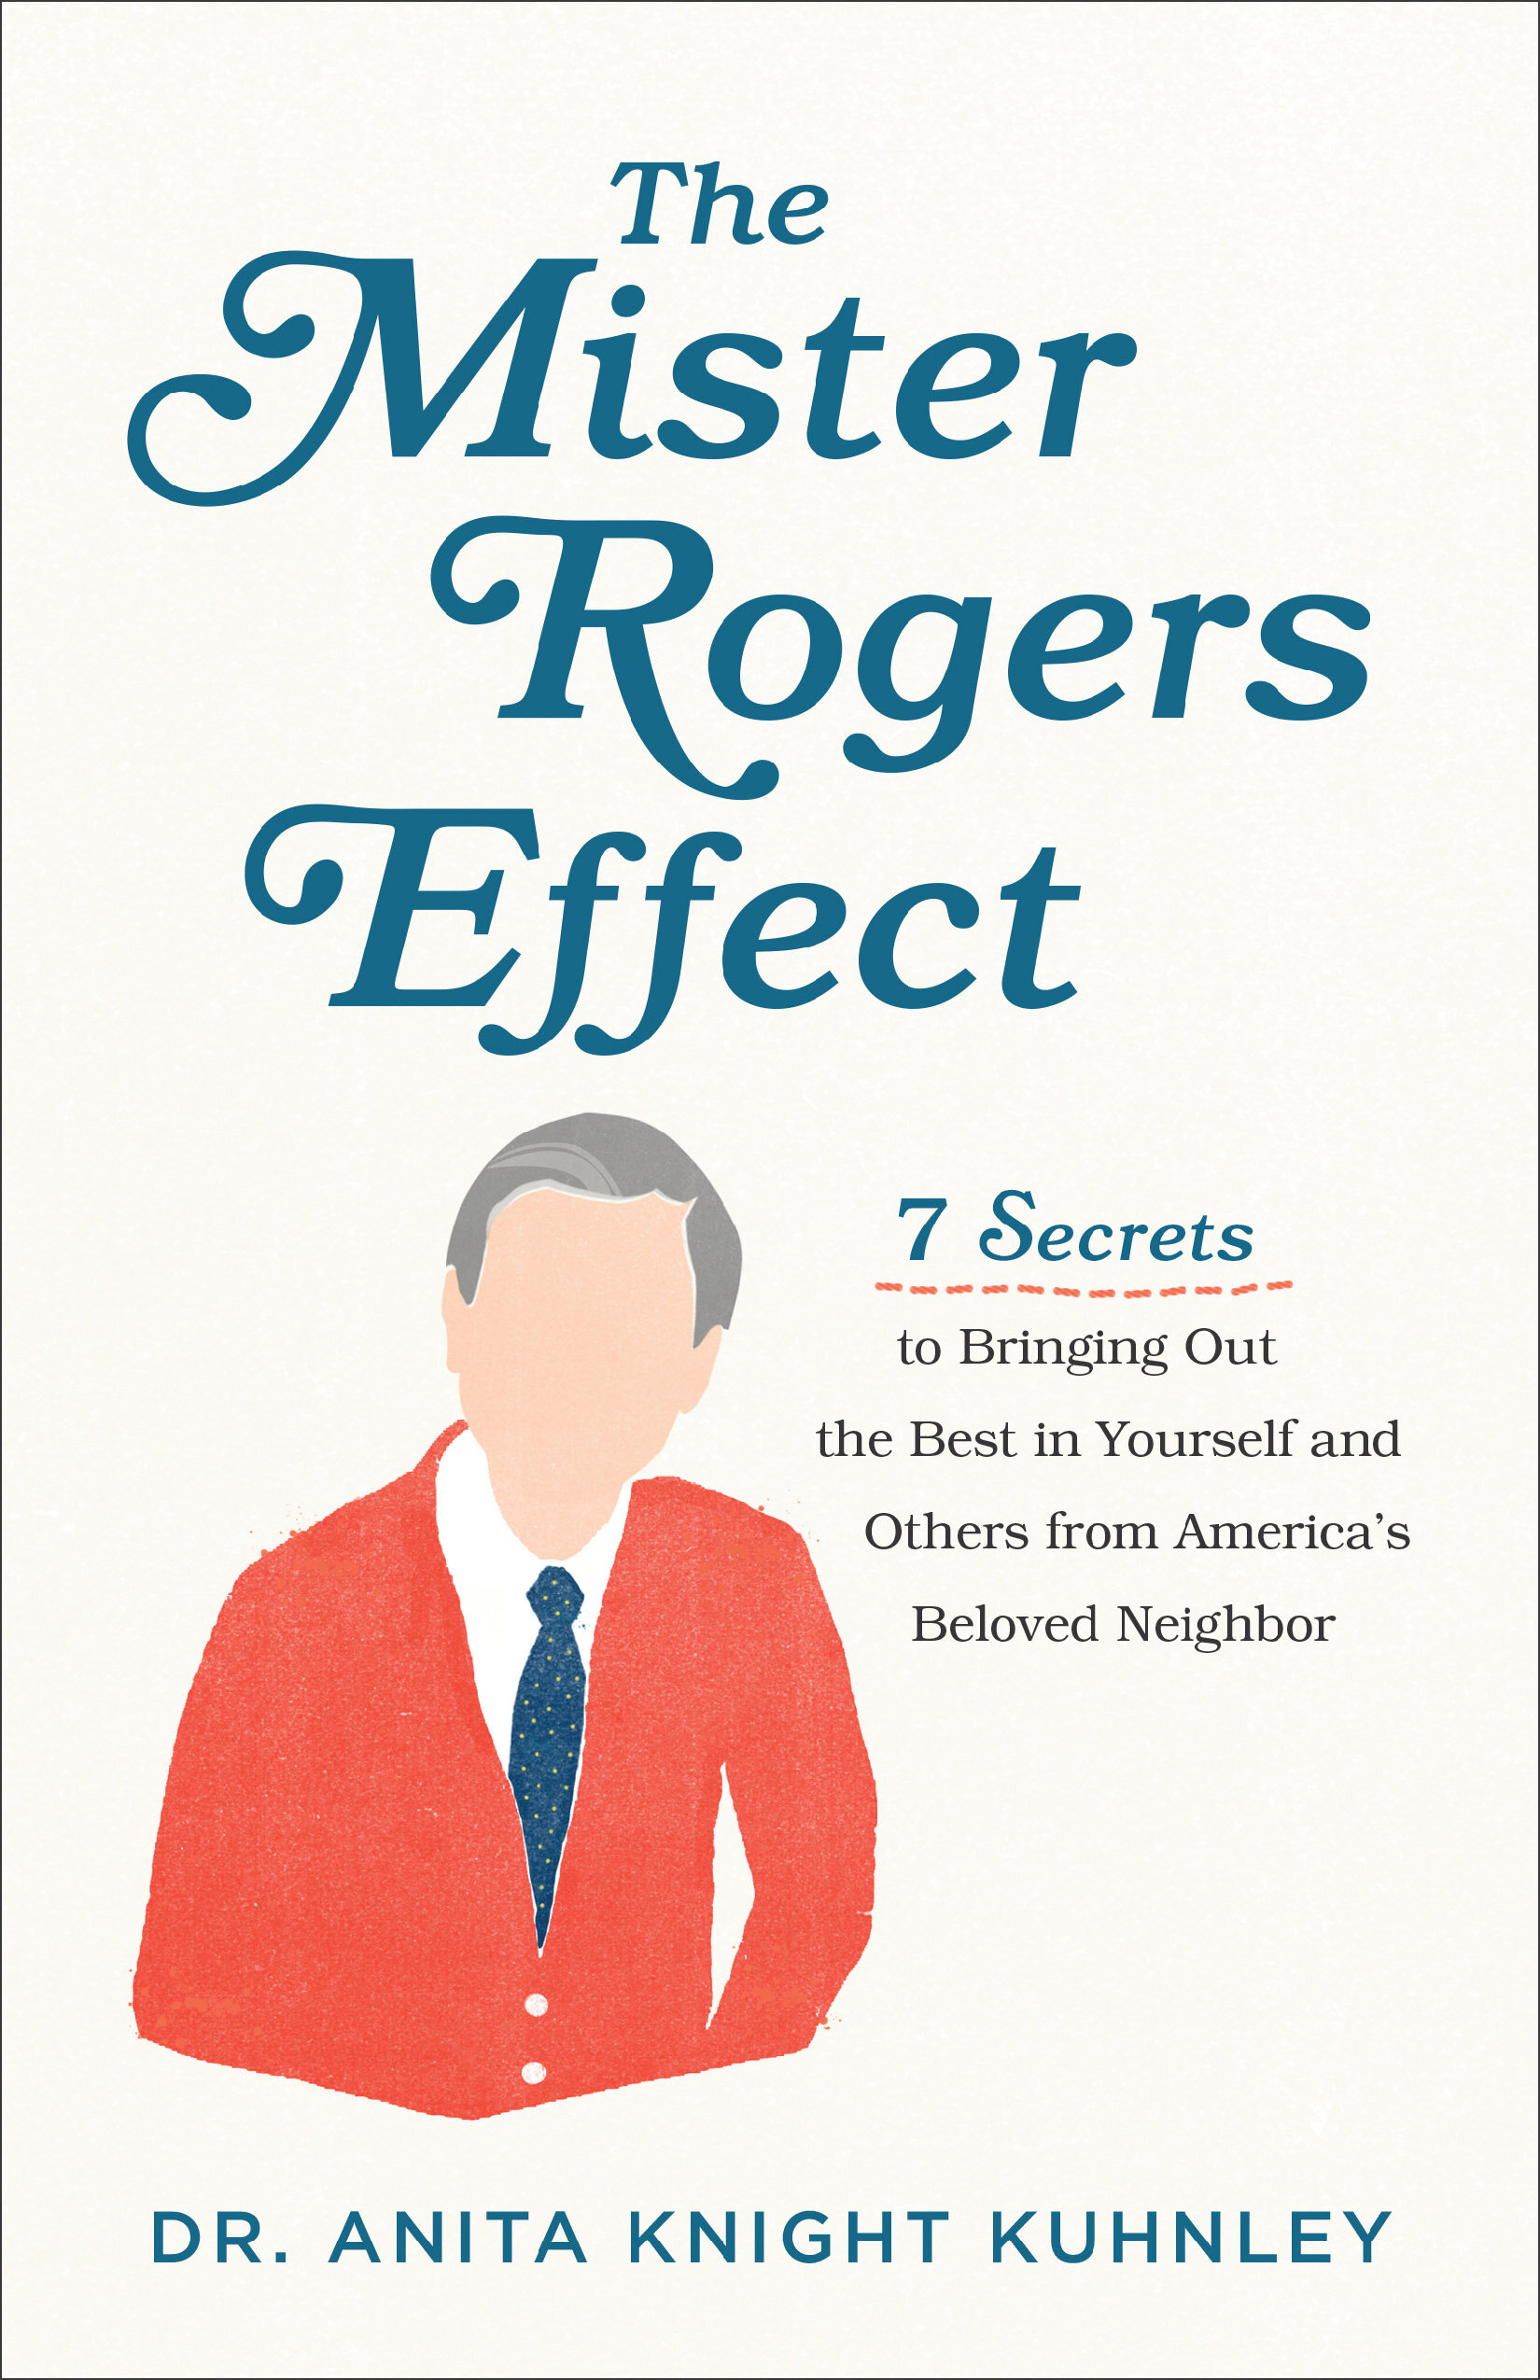 The Mister Rogers Effect: 7 Secrets to Bringing Out the Best in Yourself and Others from America's Beloved Neighbor